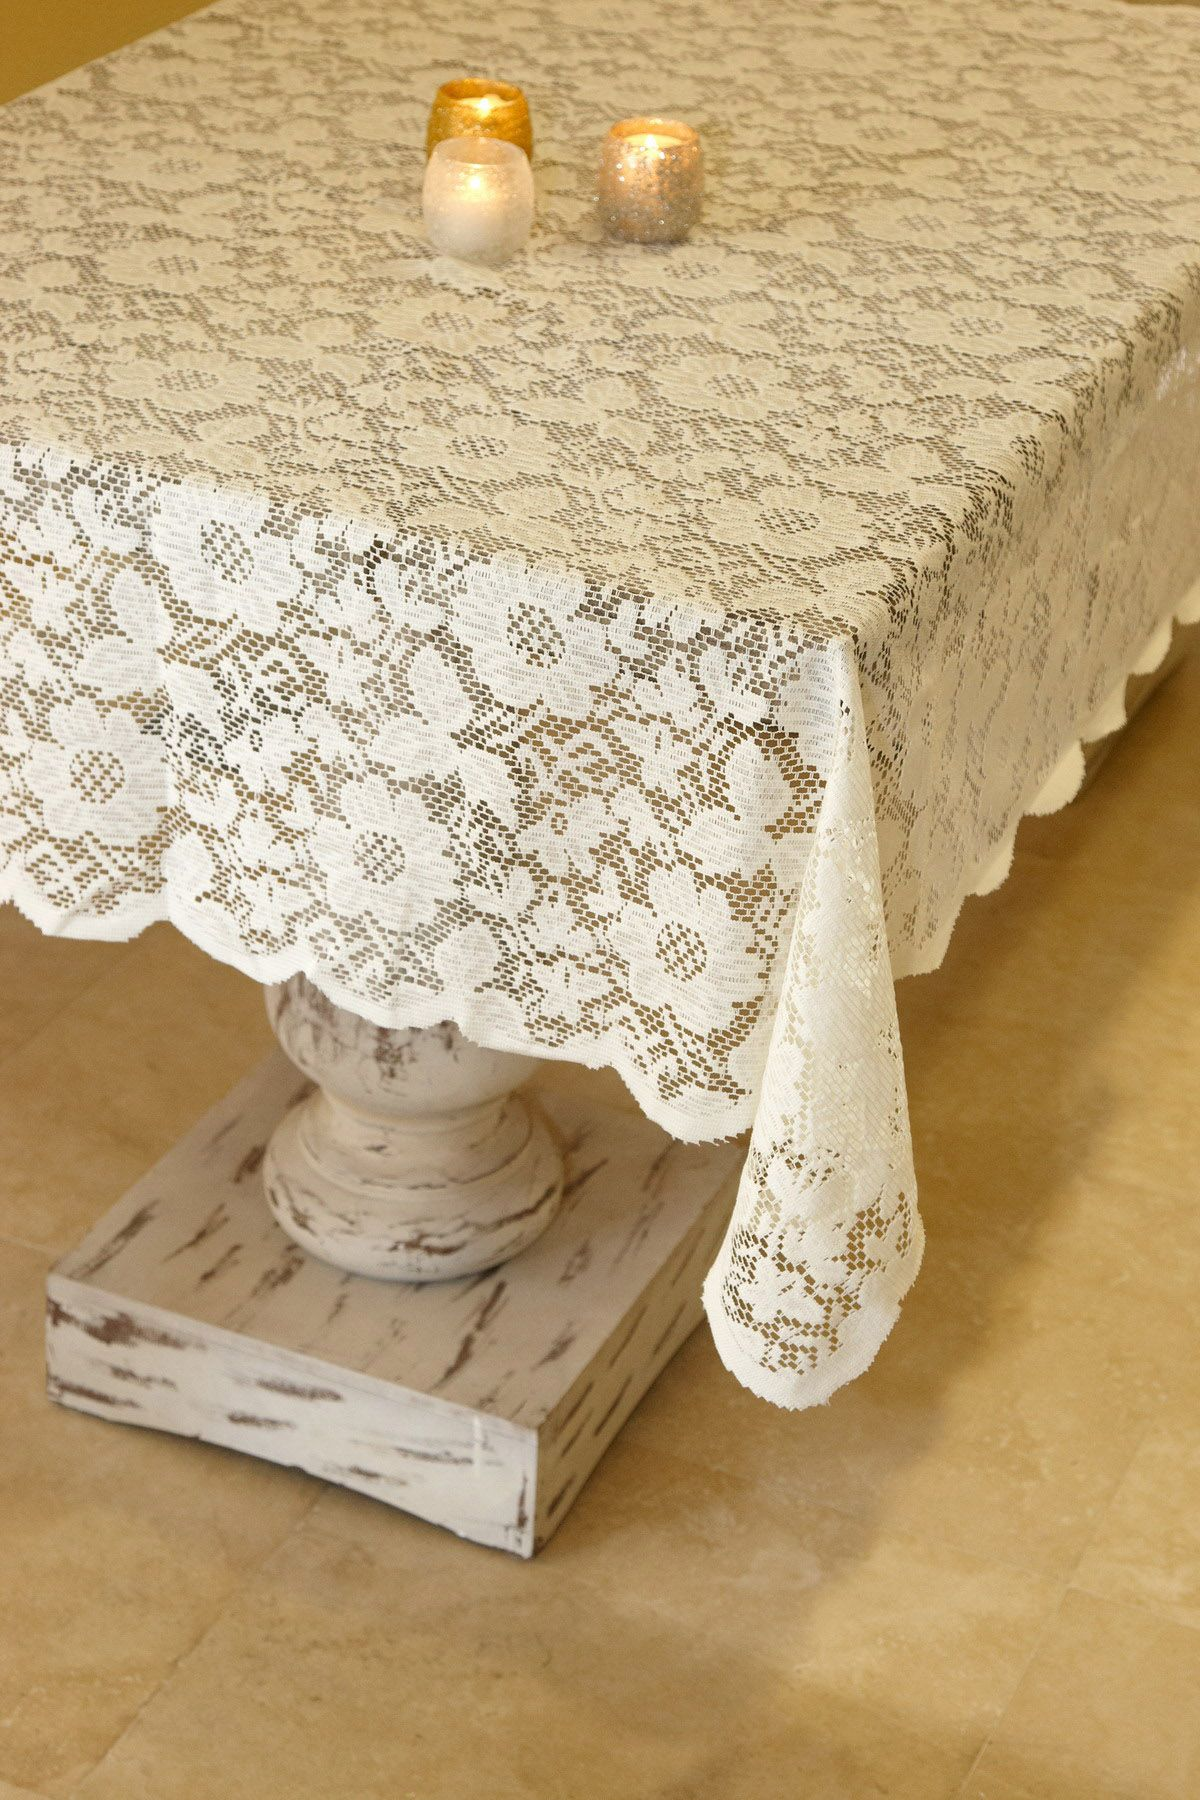 Beau Tablecloth Lace Square Ivory 54in I Love Lace! #wedding #mybigday